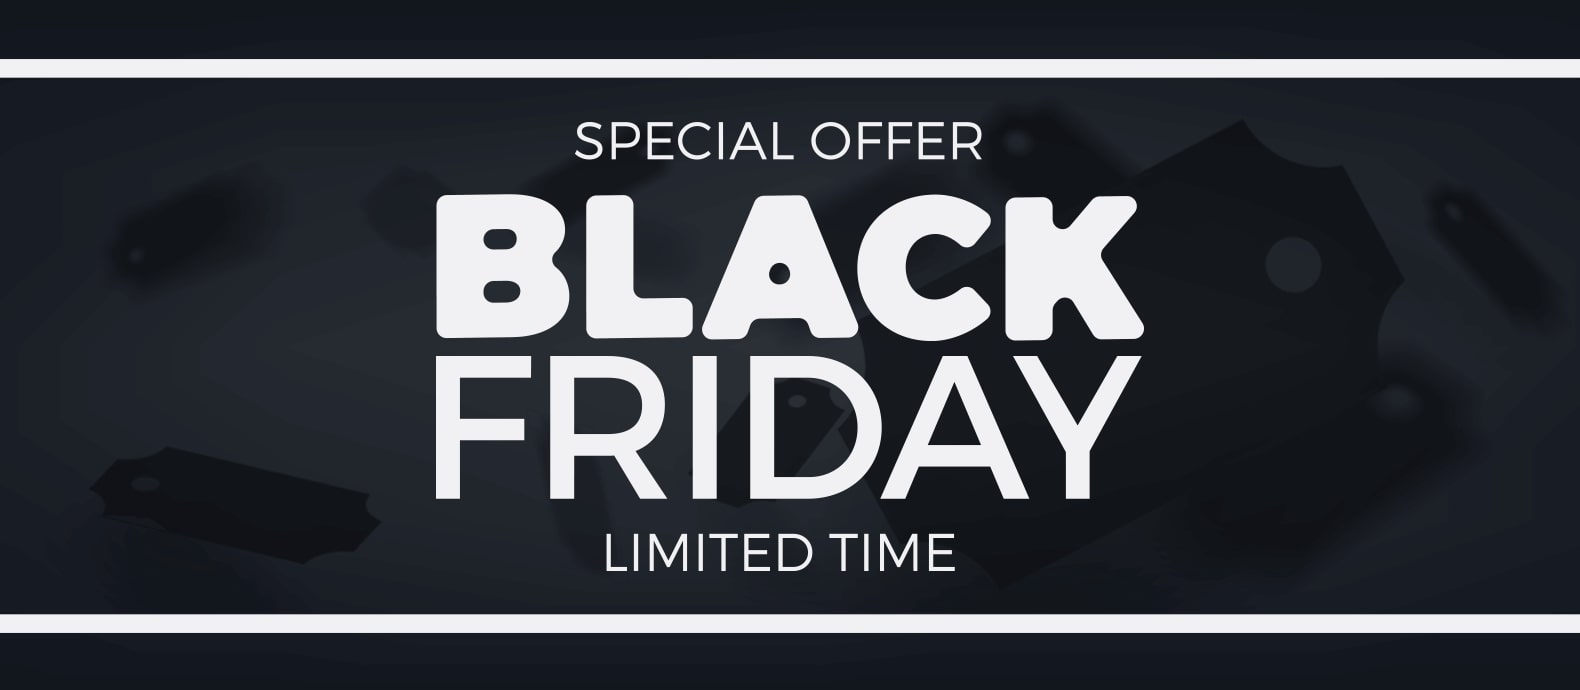 Extend Your Deals Past Black Friday Weekend